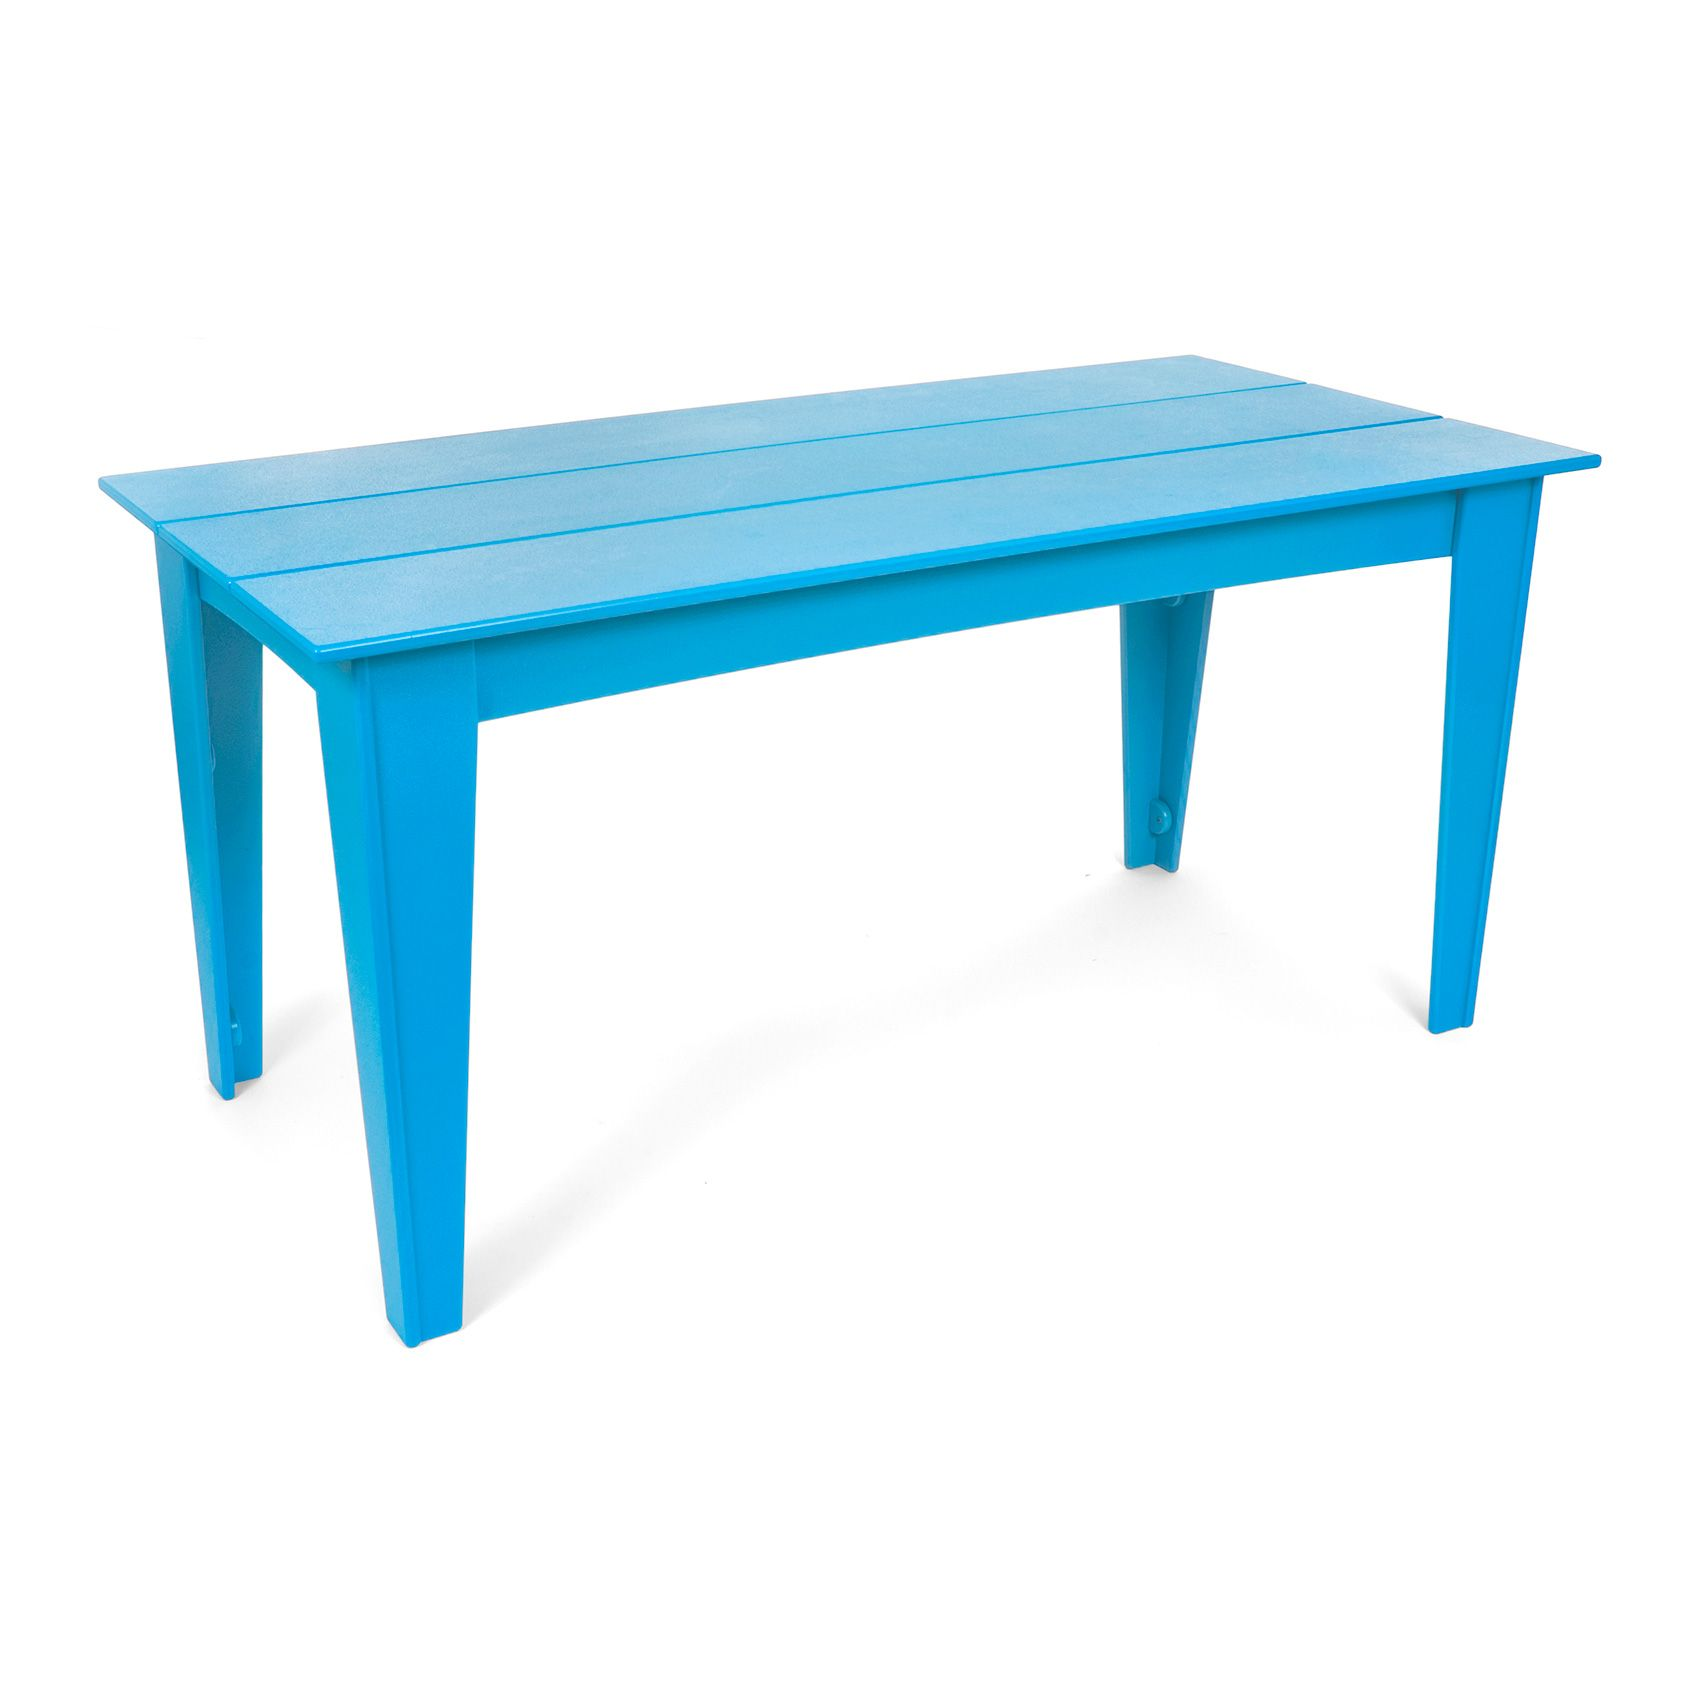 The 72 Inch Alfresco Outdoor Dining Table From Loll Designs Is Sized To  Comfortably Fit